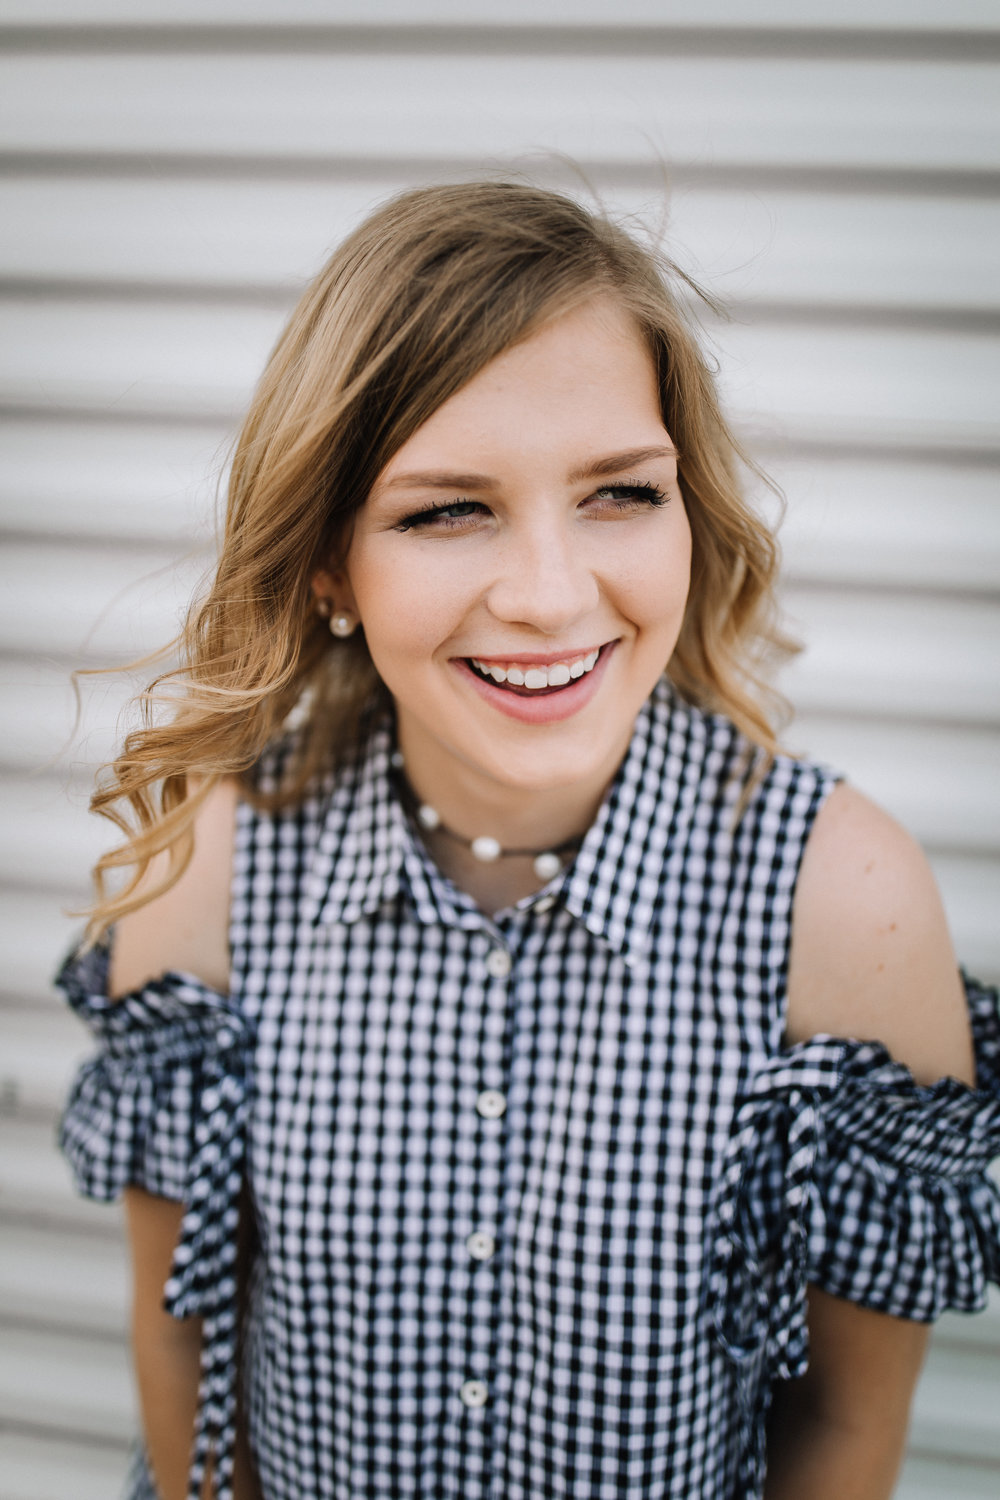 billie-shaye style photography - www.billieshayestyle.com - class of 2019 - senior portrait experience - country farm creek crop land - nashville tennessee-3844.jpg